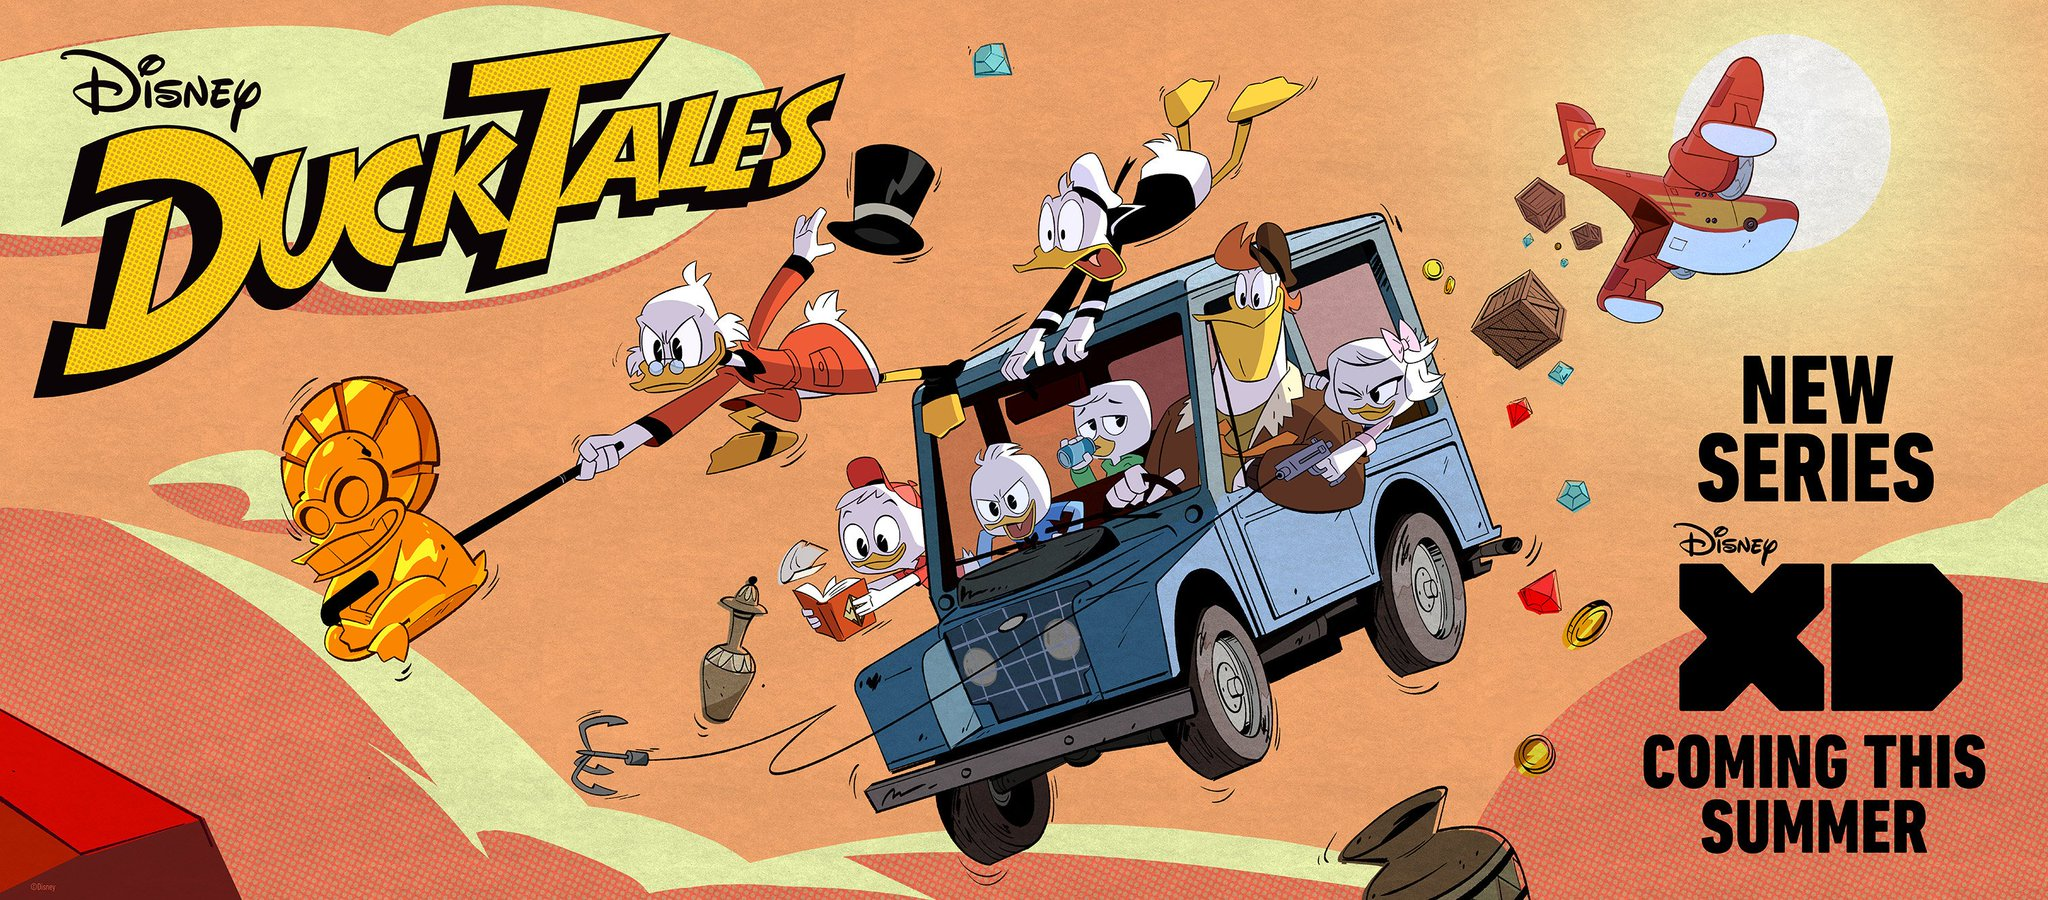 The new #DuckTales will hit all your nostalgia buttons HARD: https://t.co/7HuVh0VKSN https://t.co/M8CgD2Xmg9